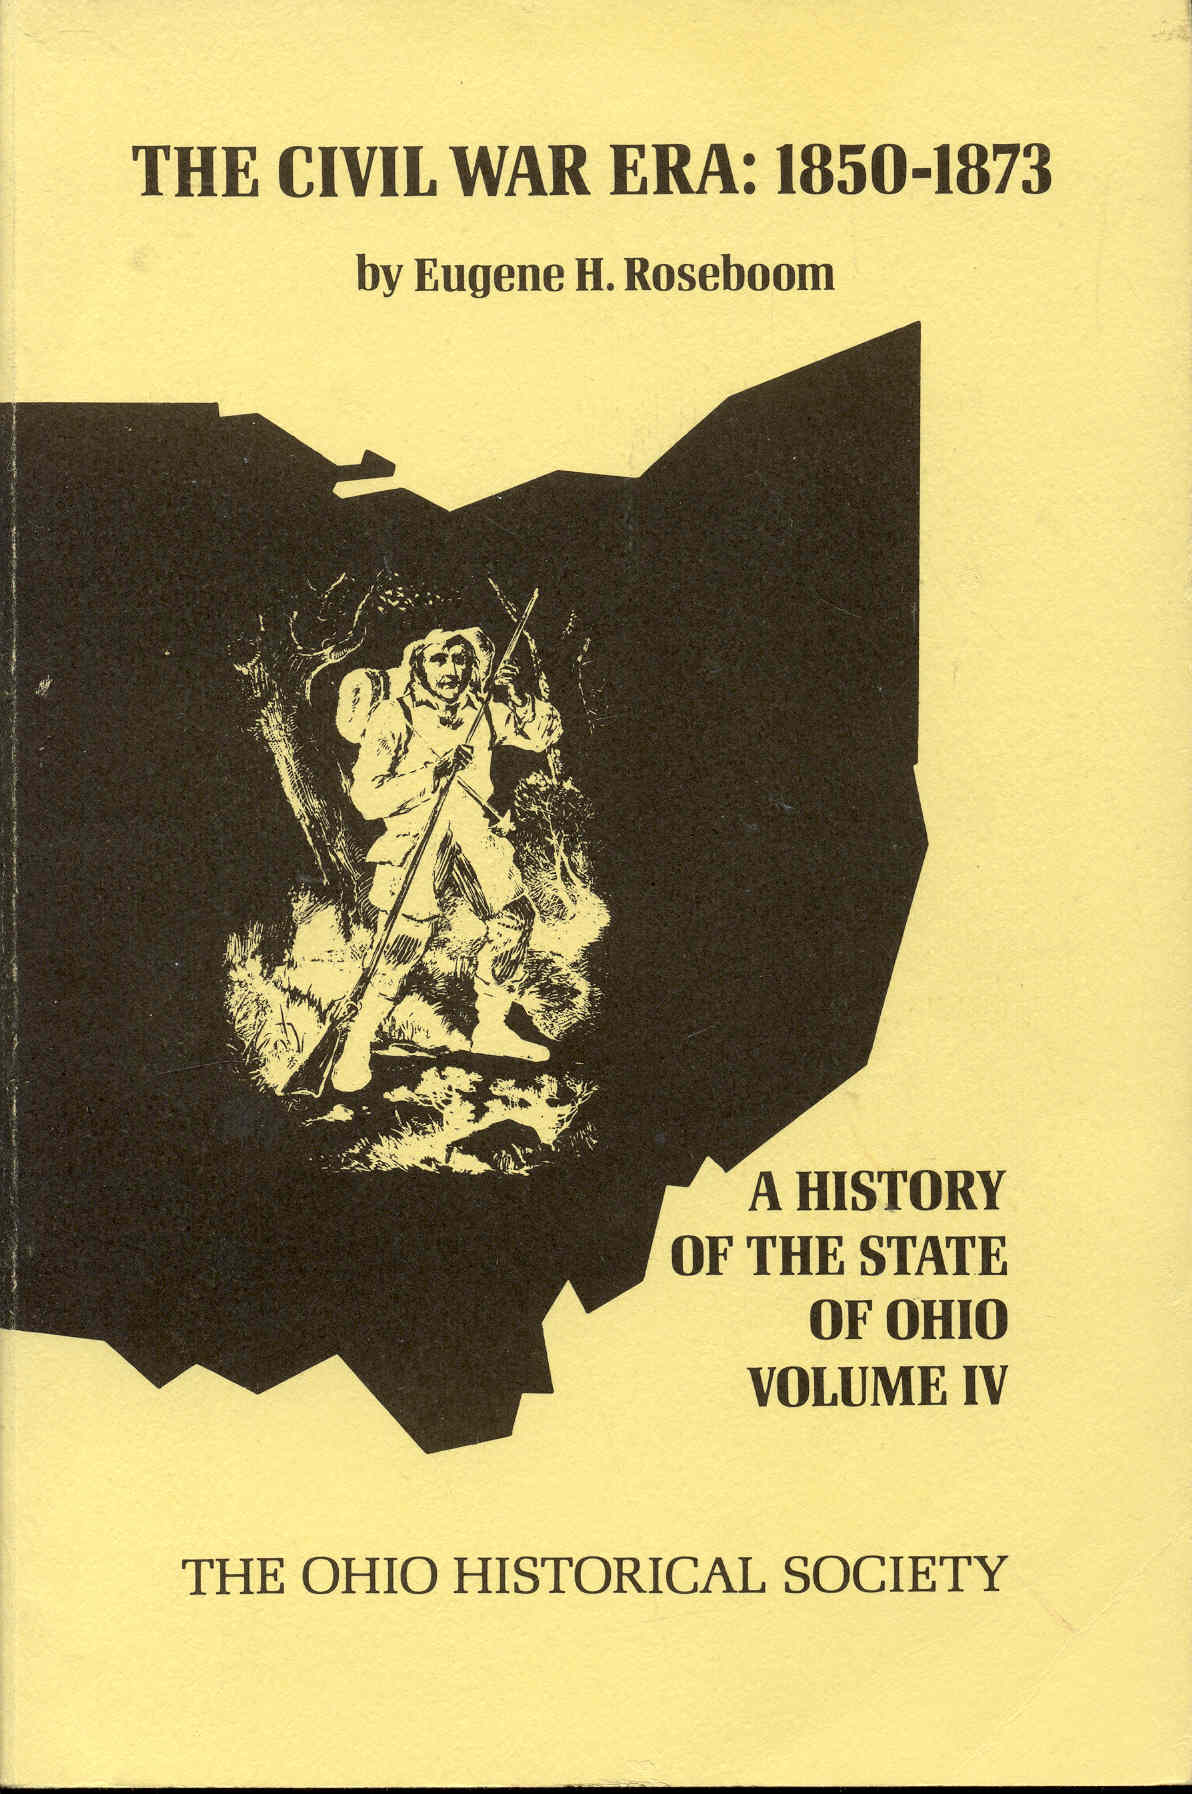 Image for The Civil War Era 1850-1873 (The History of The State of Ohio, Volume IV)